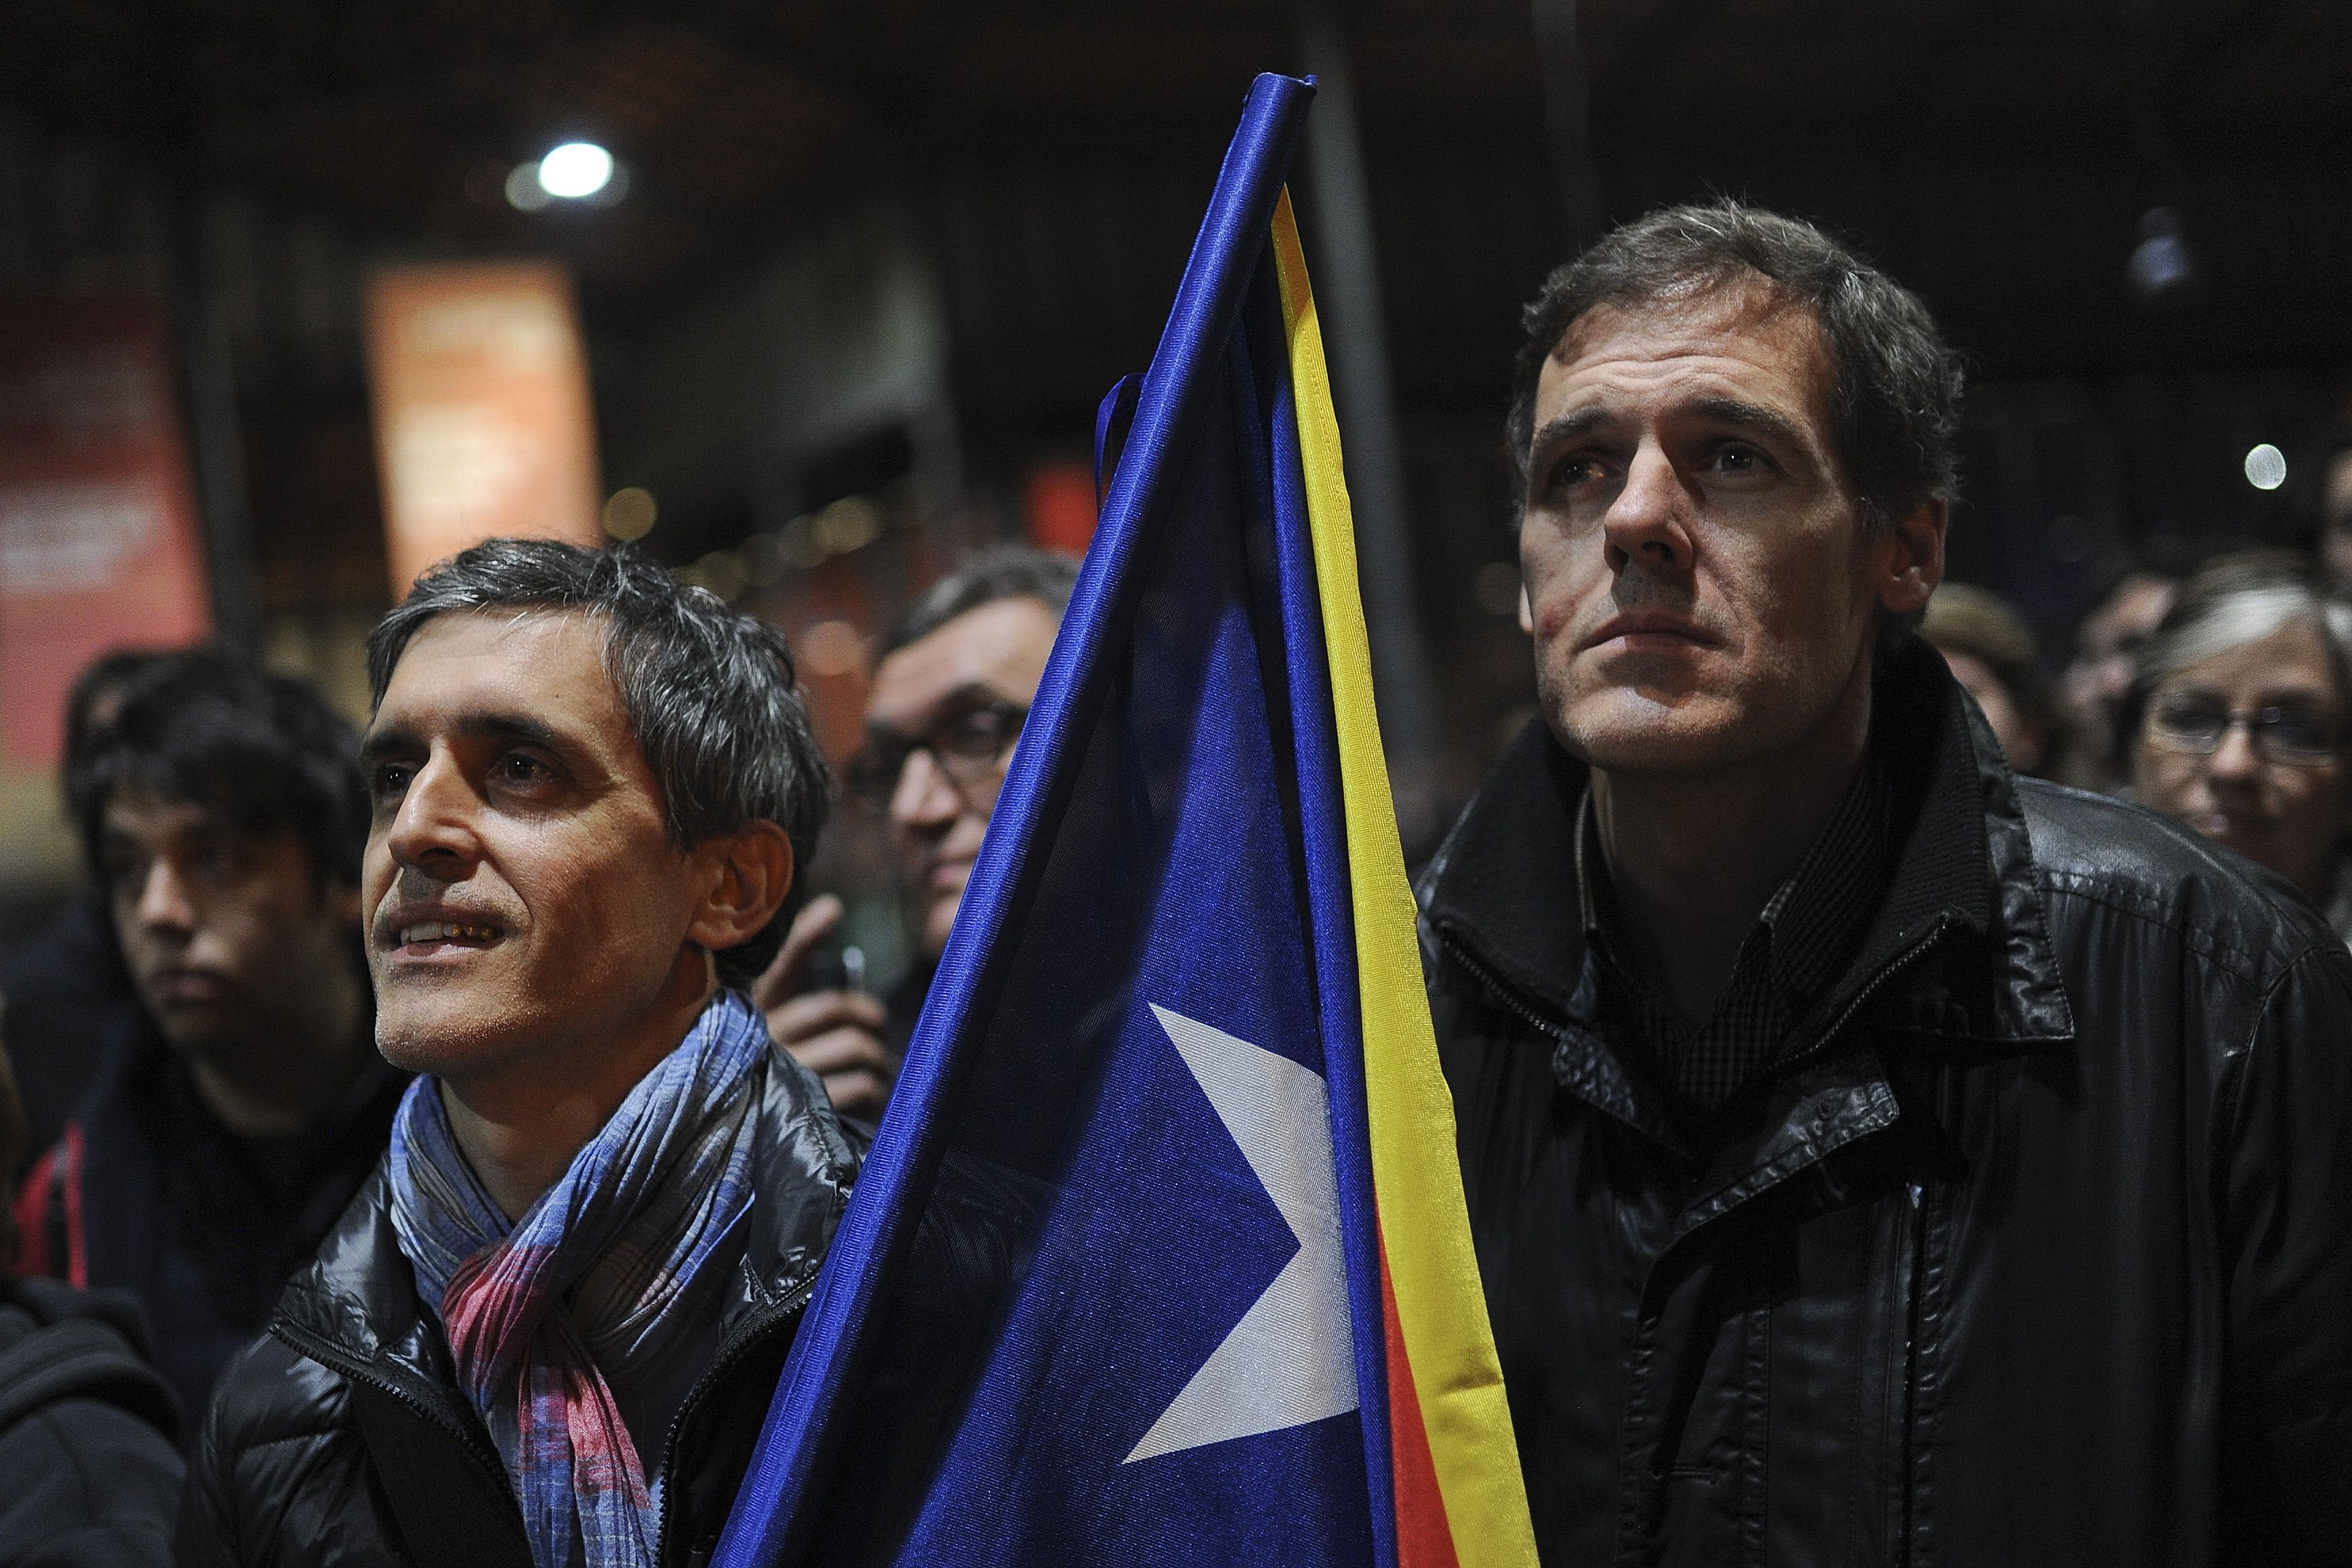 Pro-independence activists attend a meeting after a symbolic vote on independence for Catalonia from Spain at a polling station in Barcelona on Nov. 9, 2014.